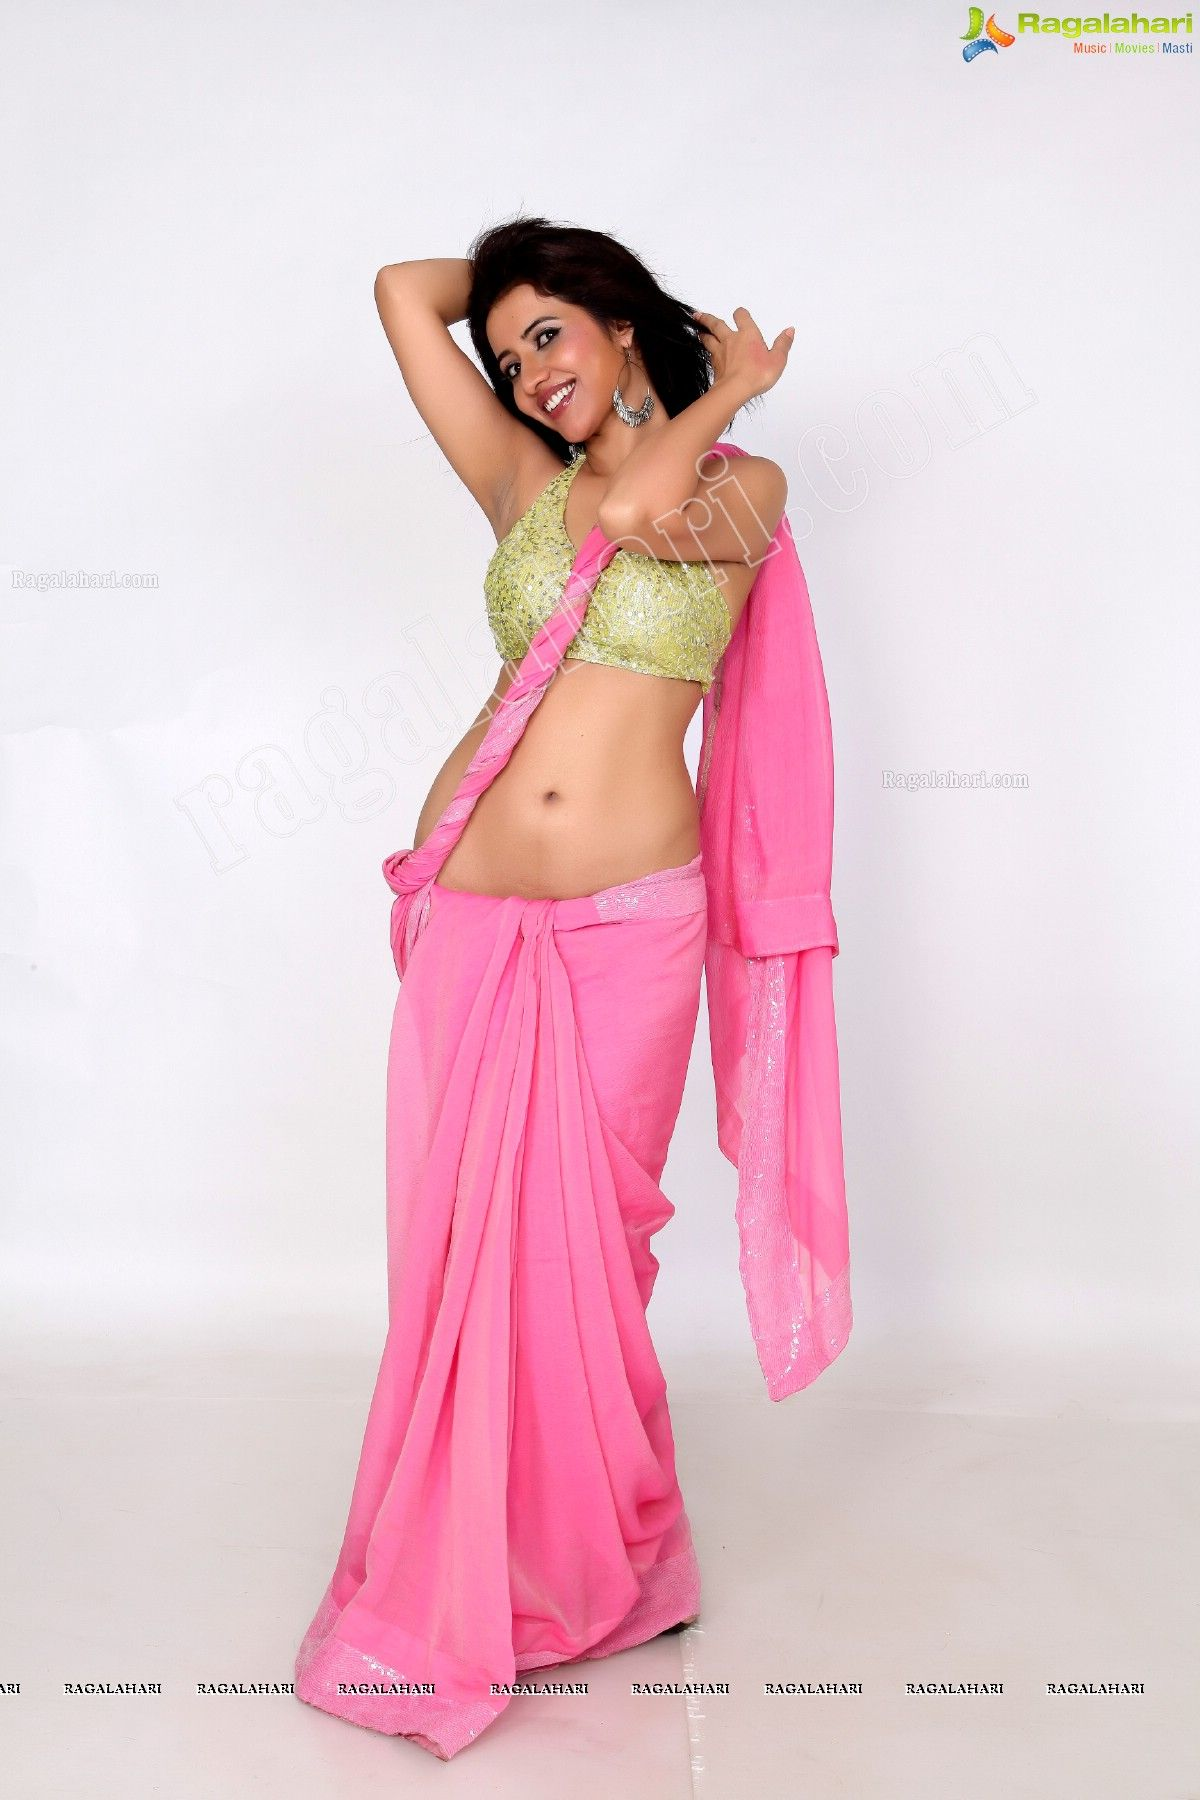 Niir Arora Hot Babe\'s Spicy Photoshoot Pics In Saree... - Page 2 ...